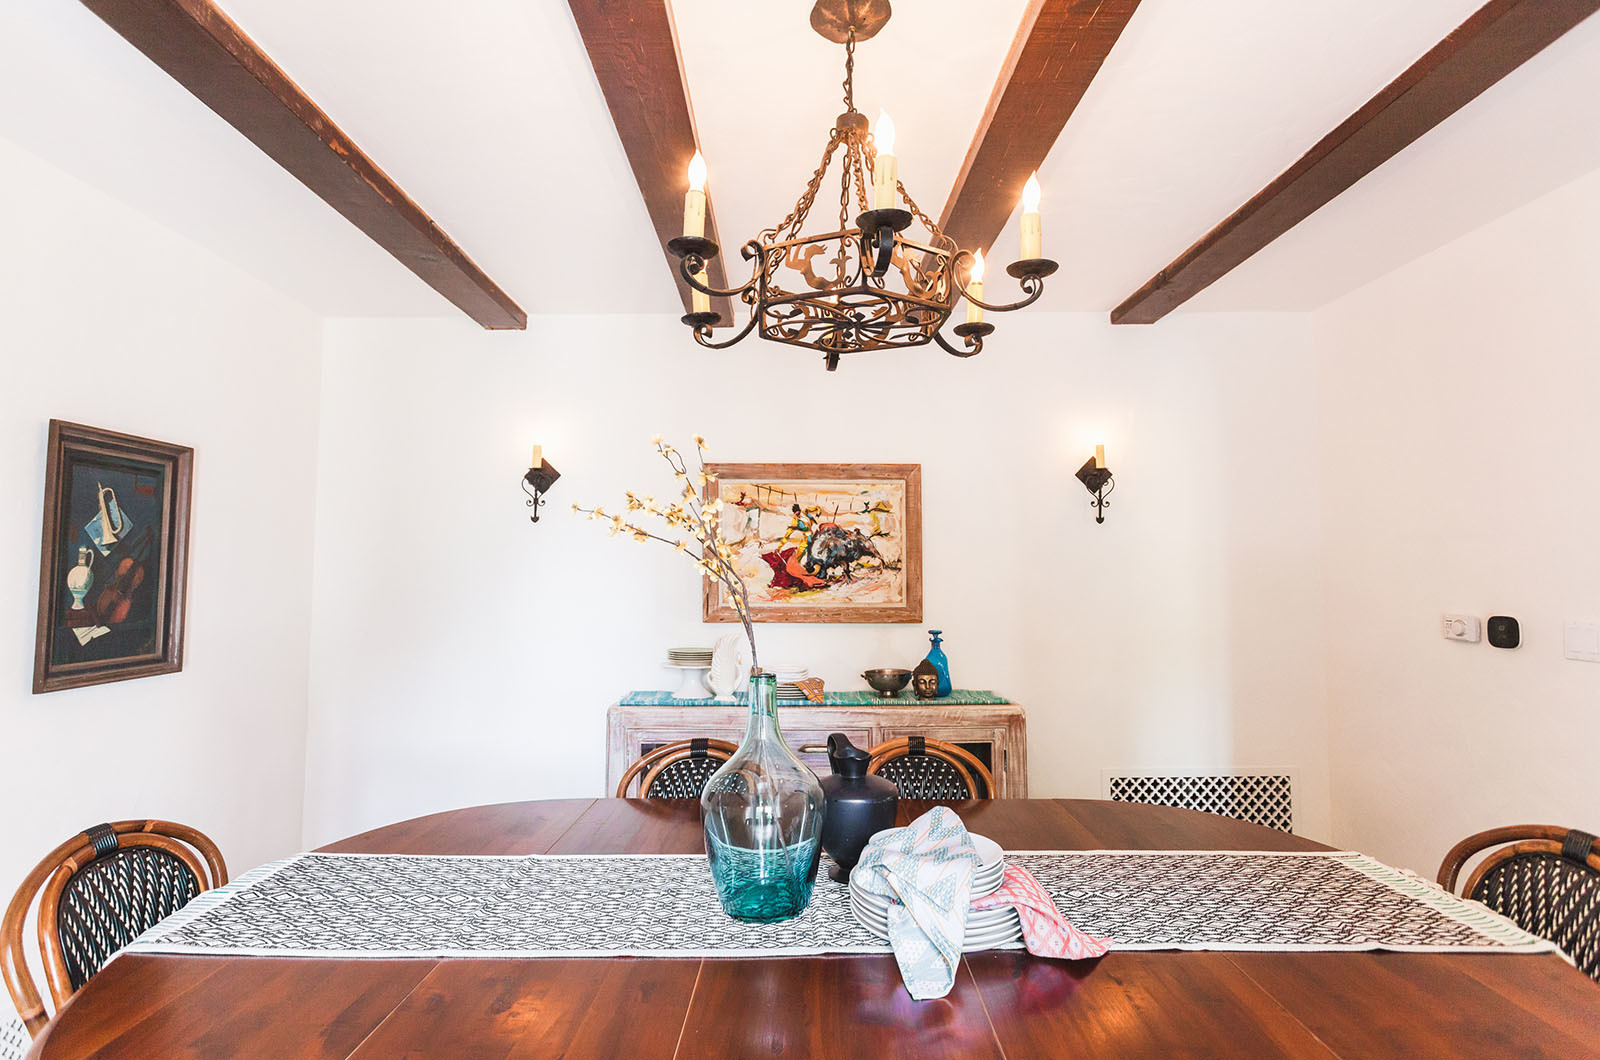 In the dining room, original wood beams helped to guide the tonal palette of natural woods and emerald tones in the accessories. The vintage chandelier presides over the table that the family has owned for decades and classic French bistro chairs from Maison Midi.